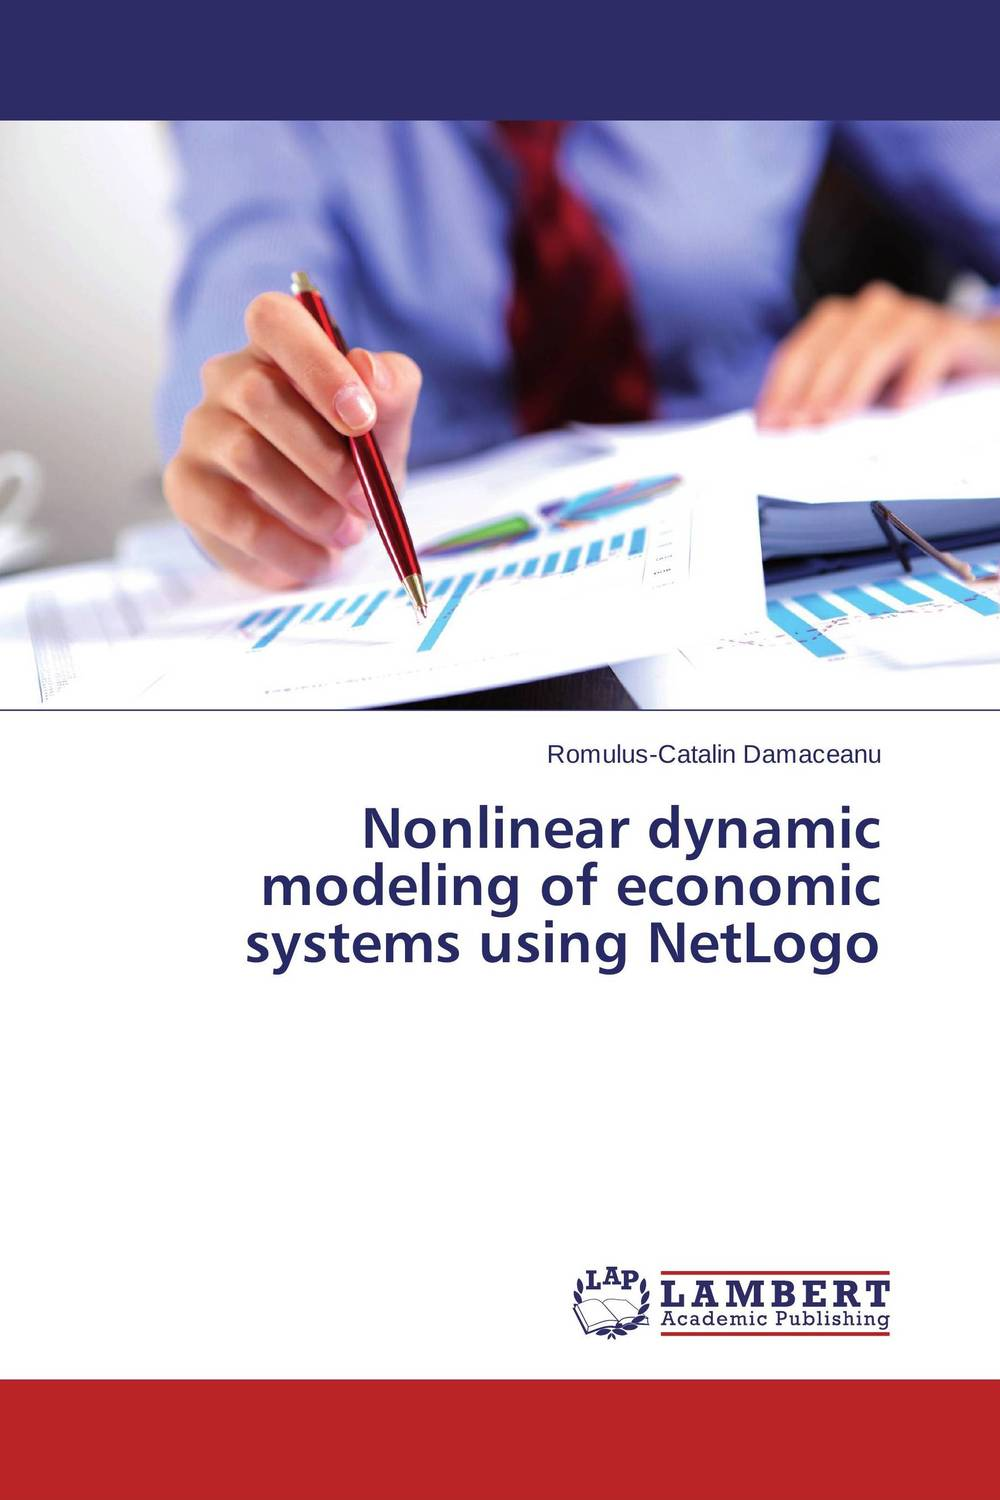 Nonlinear dynamic modeling of economic systems using NetLogo